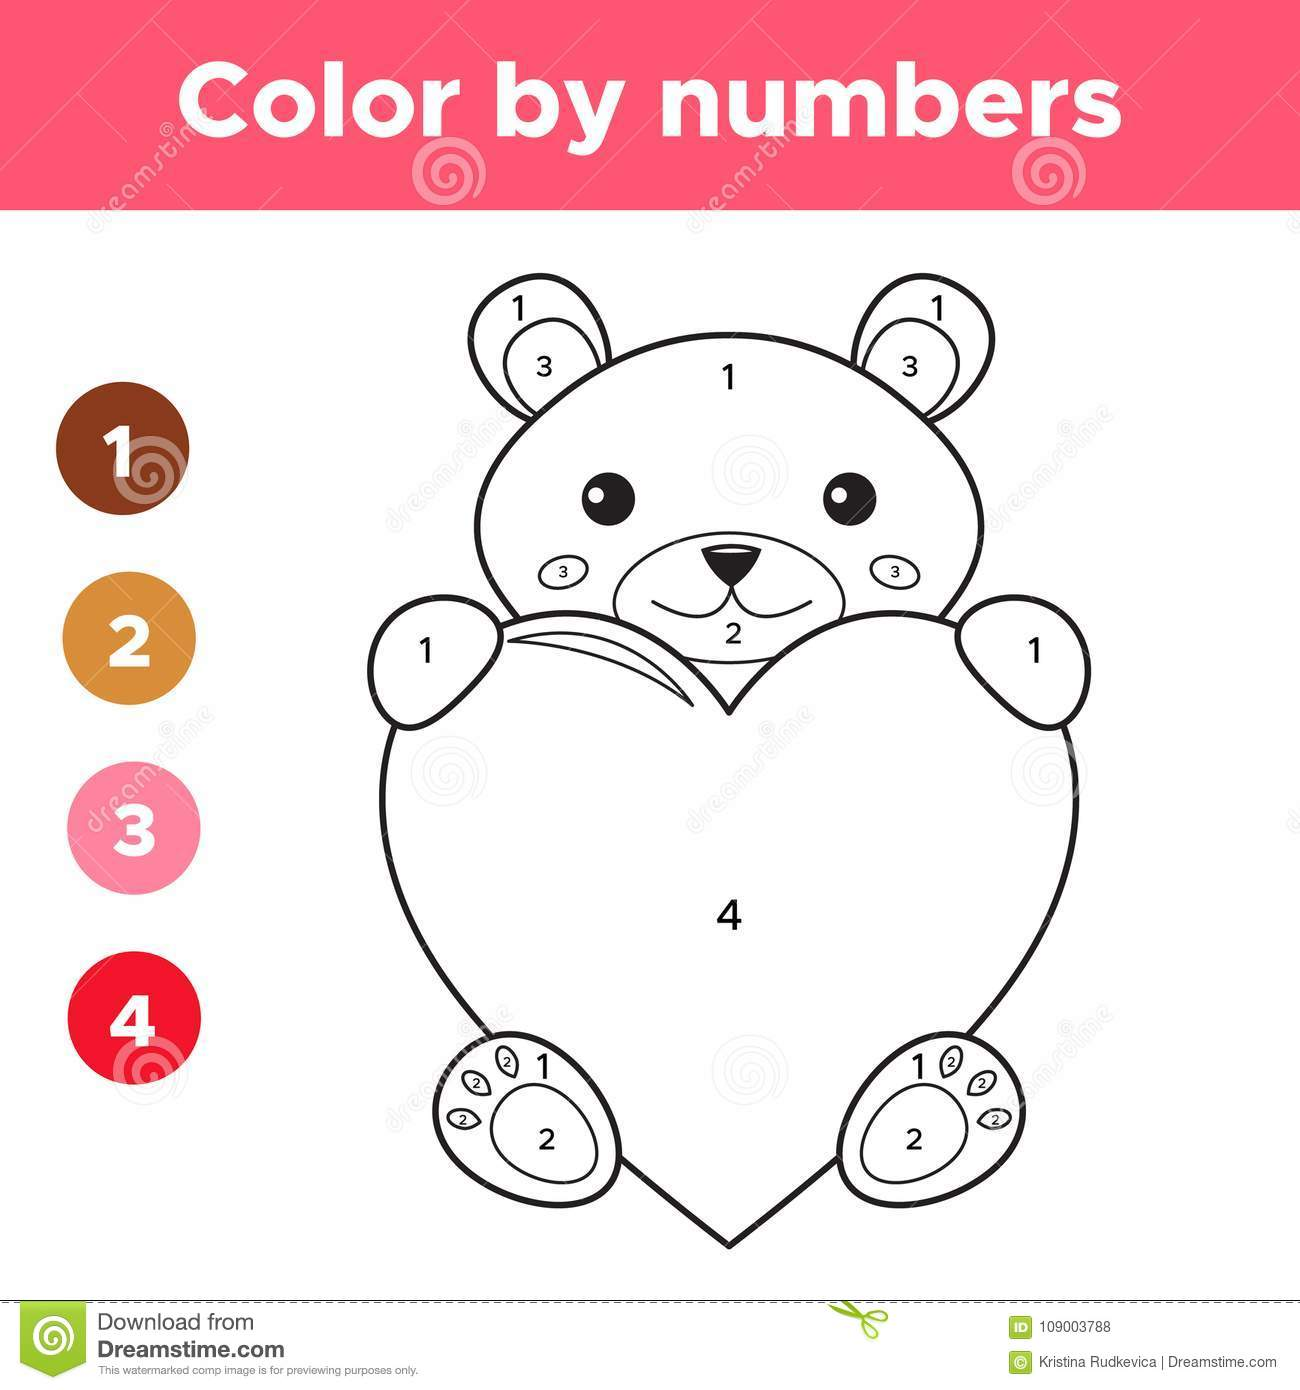 Color By Numbers For Preschool Kids Stock Vector - Illustration of ...